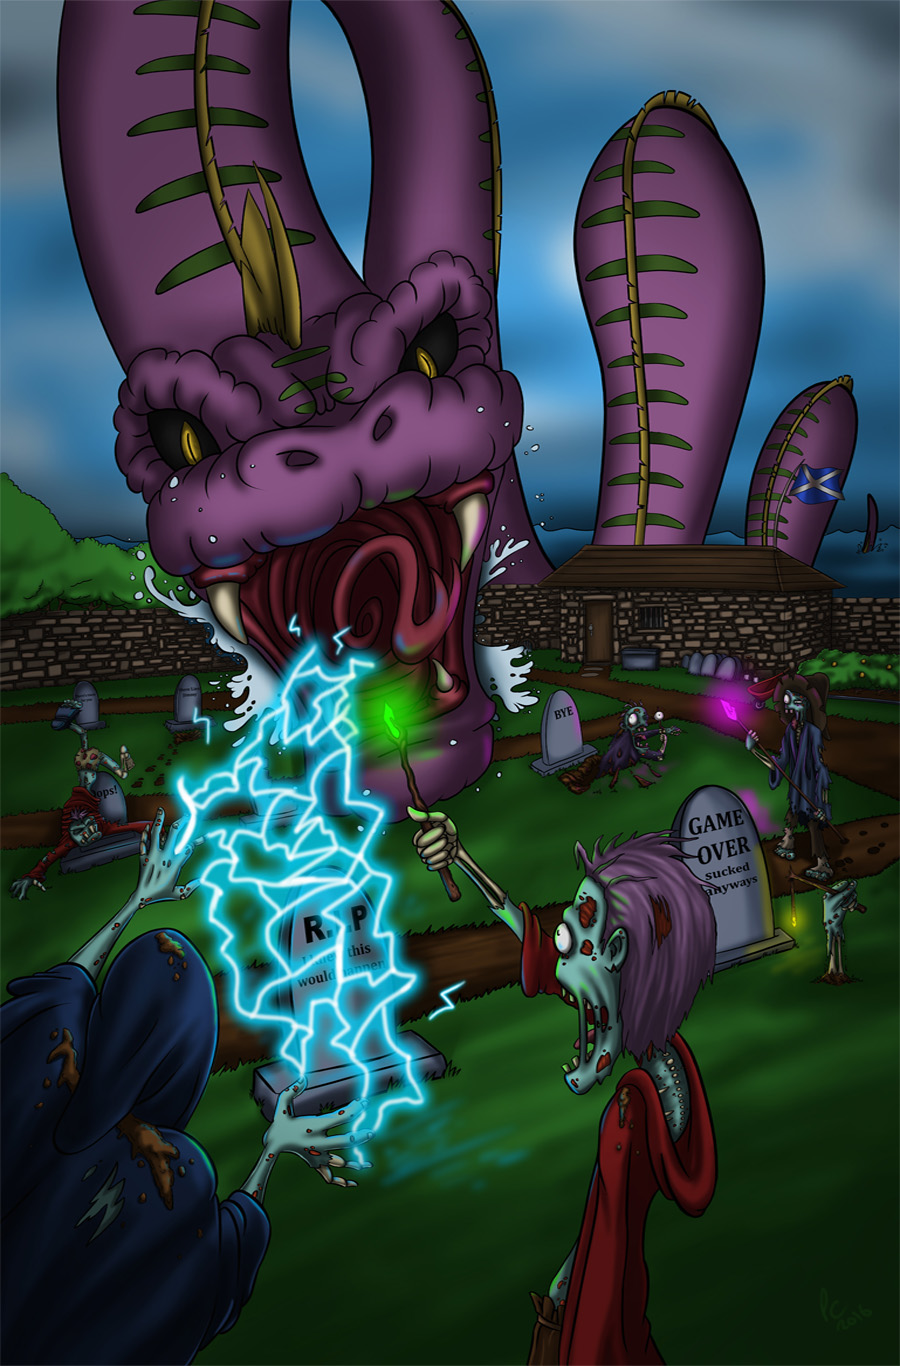 Lochness Monster vs Wizard Zombies!